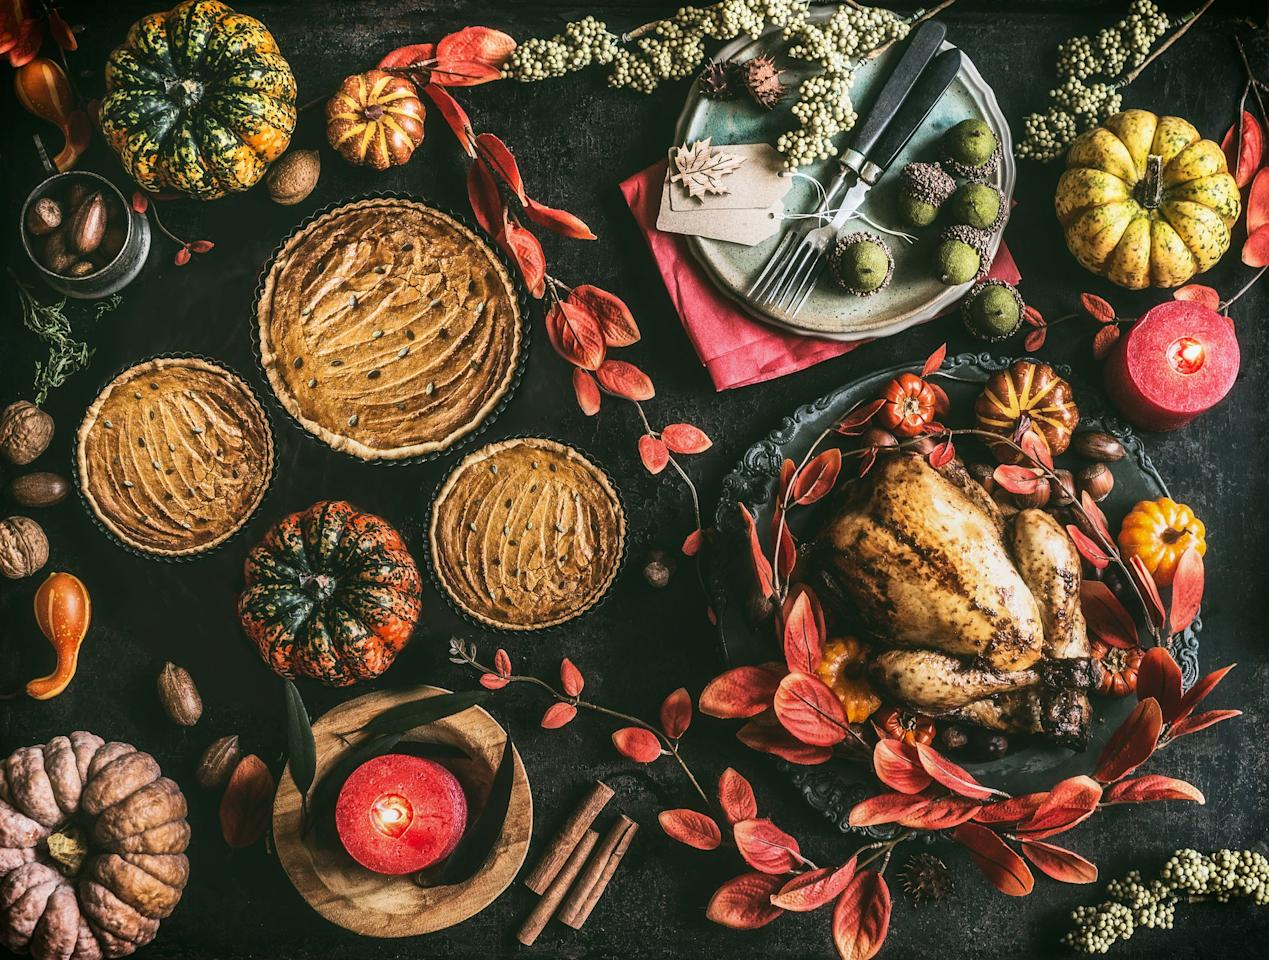 <p>Whether you're spending this tasty holiday cooking with family or relaxing with friends, a good way to get into the Thanksgiving spirit is with these sweet words about gratitude and togetherness.</p>